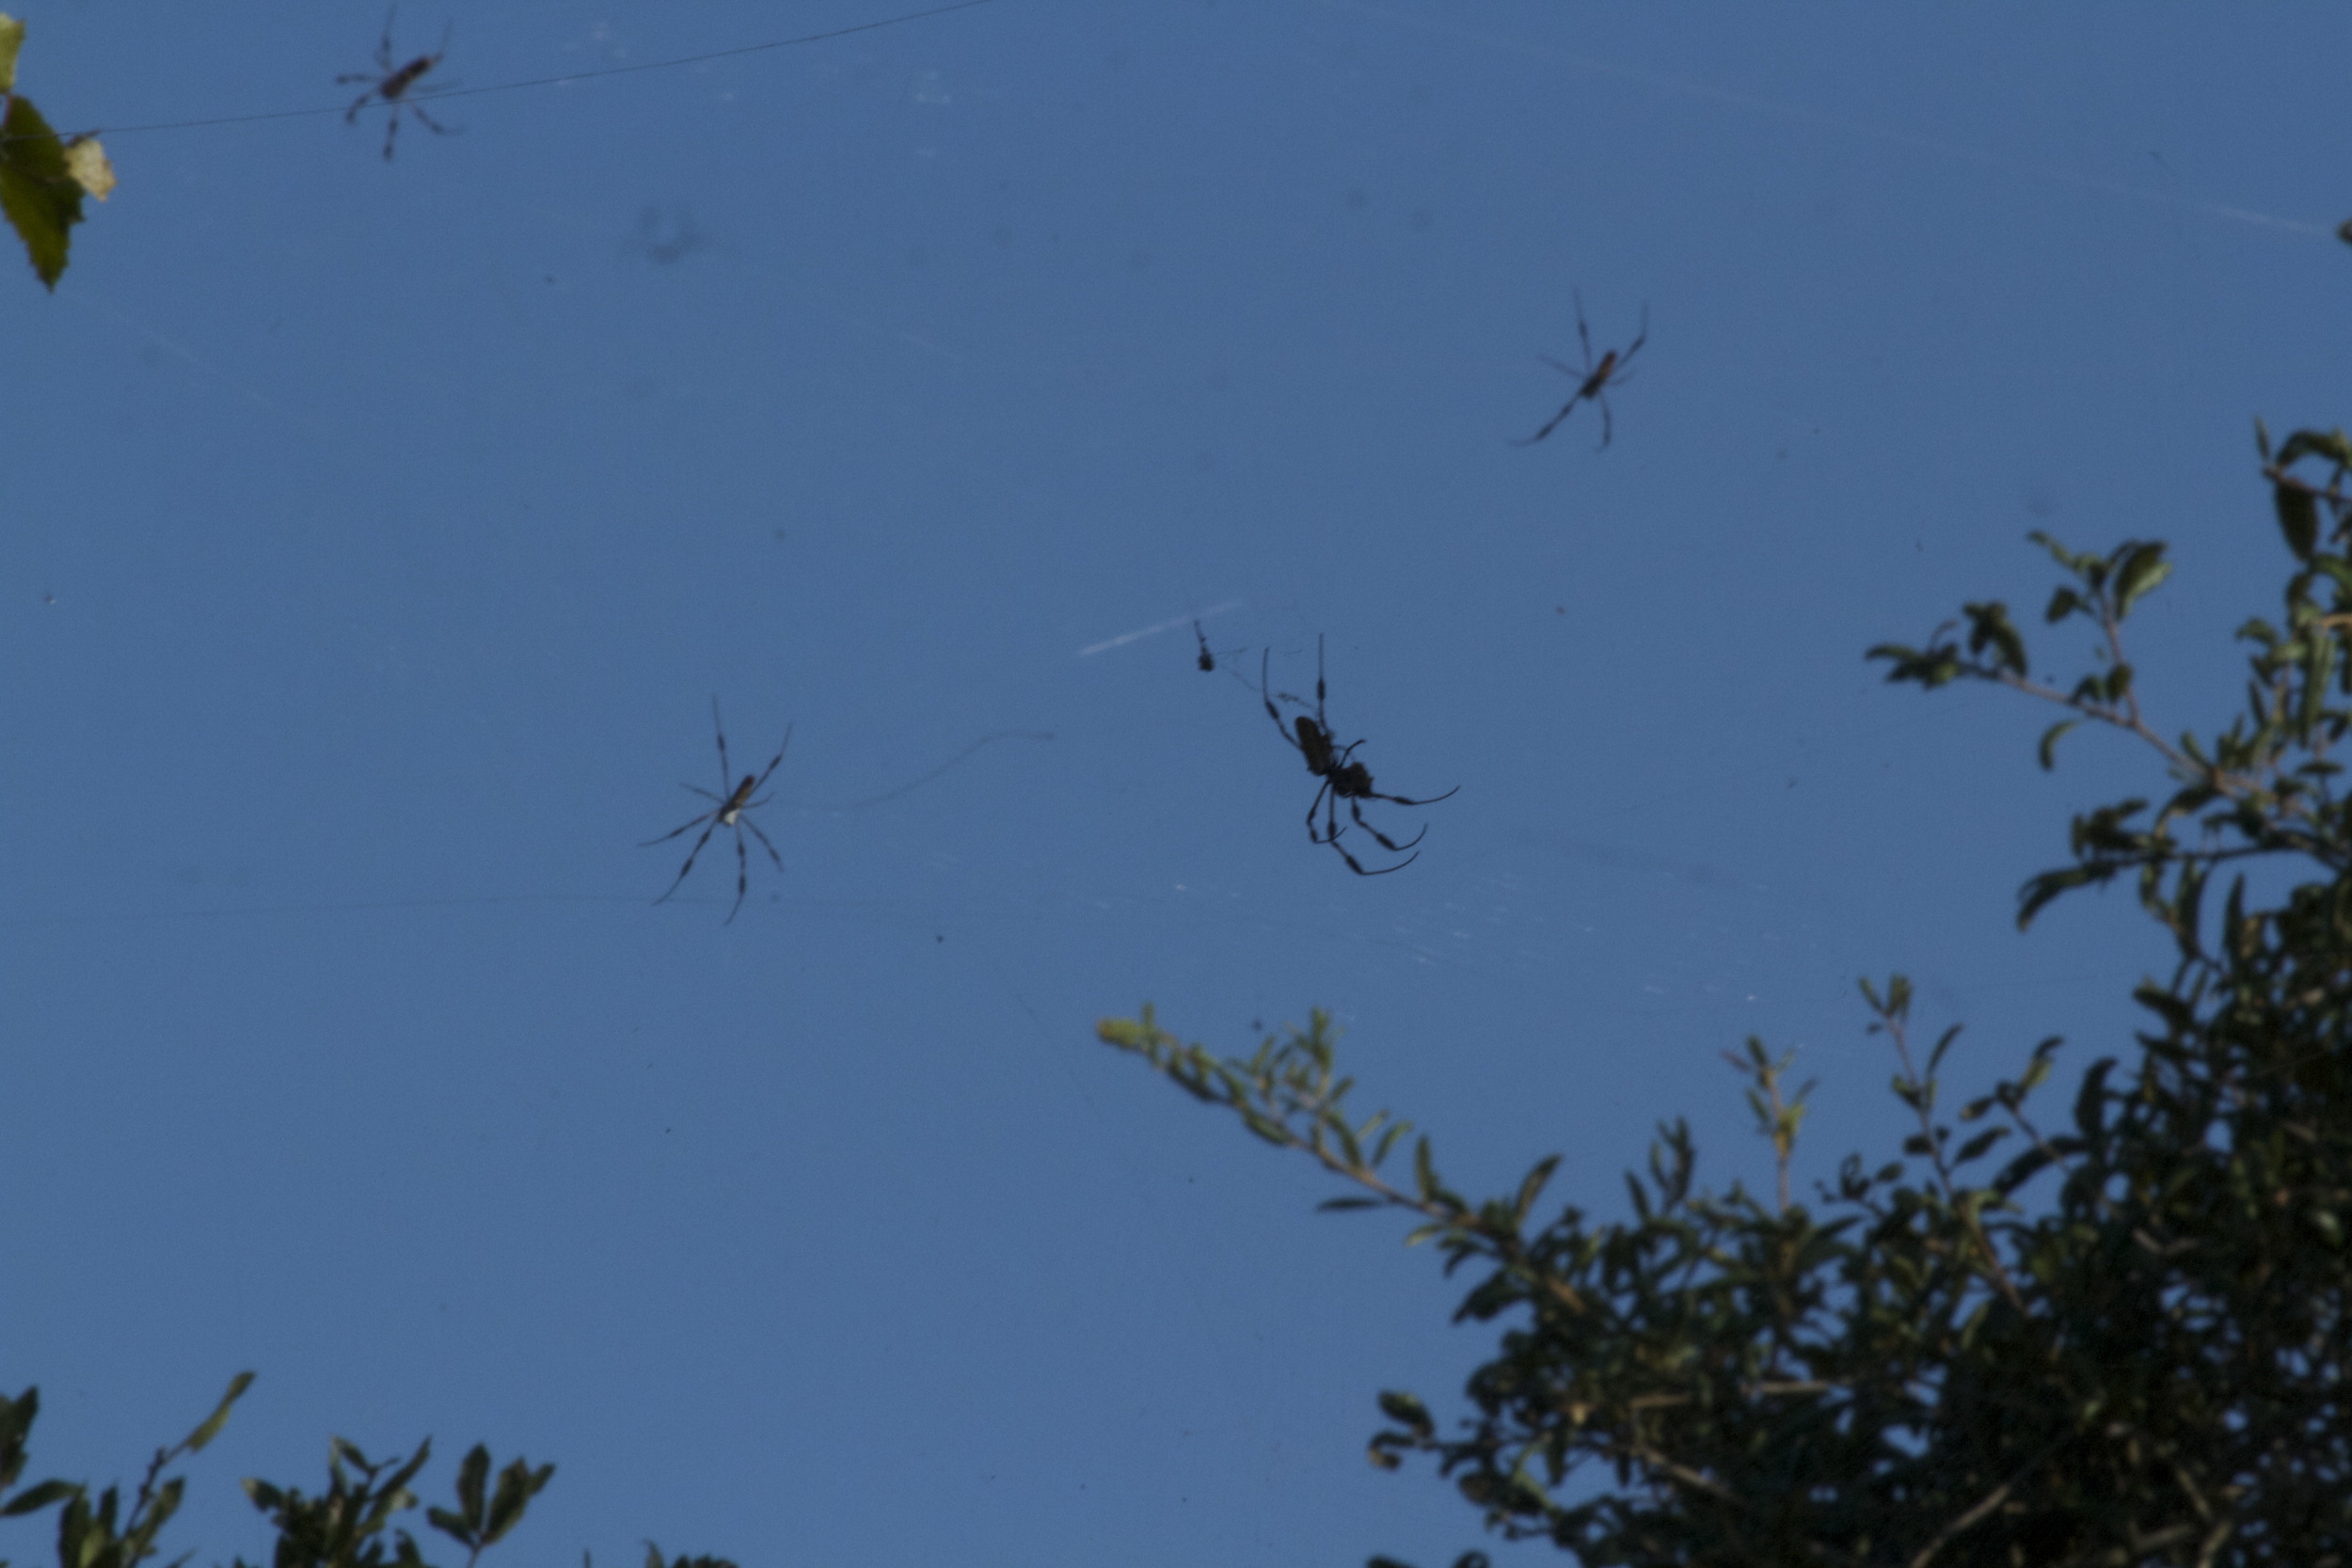 A closer look shows the sky nearly covered with cobwebs and spiders. A flying bug would find it hard to avoid this trap.